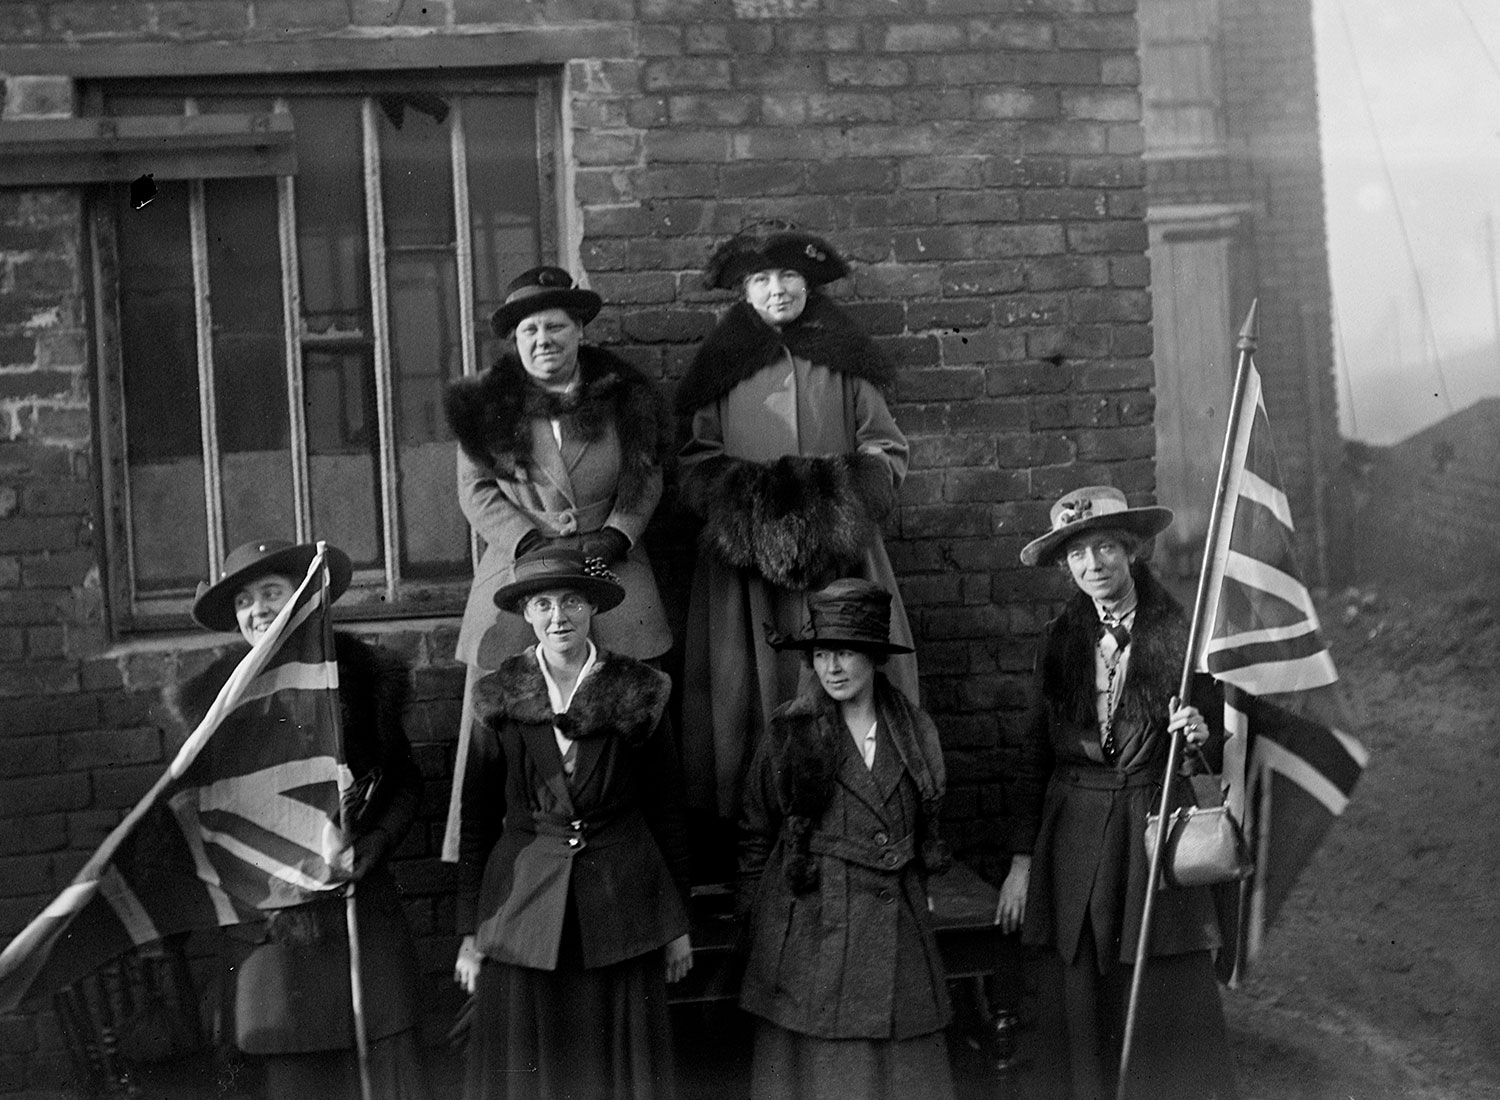 The launch of Christabel Pankhurst's election campaign in Smethwick, 28 November 1918. (Topfoto)